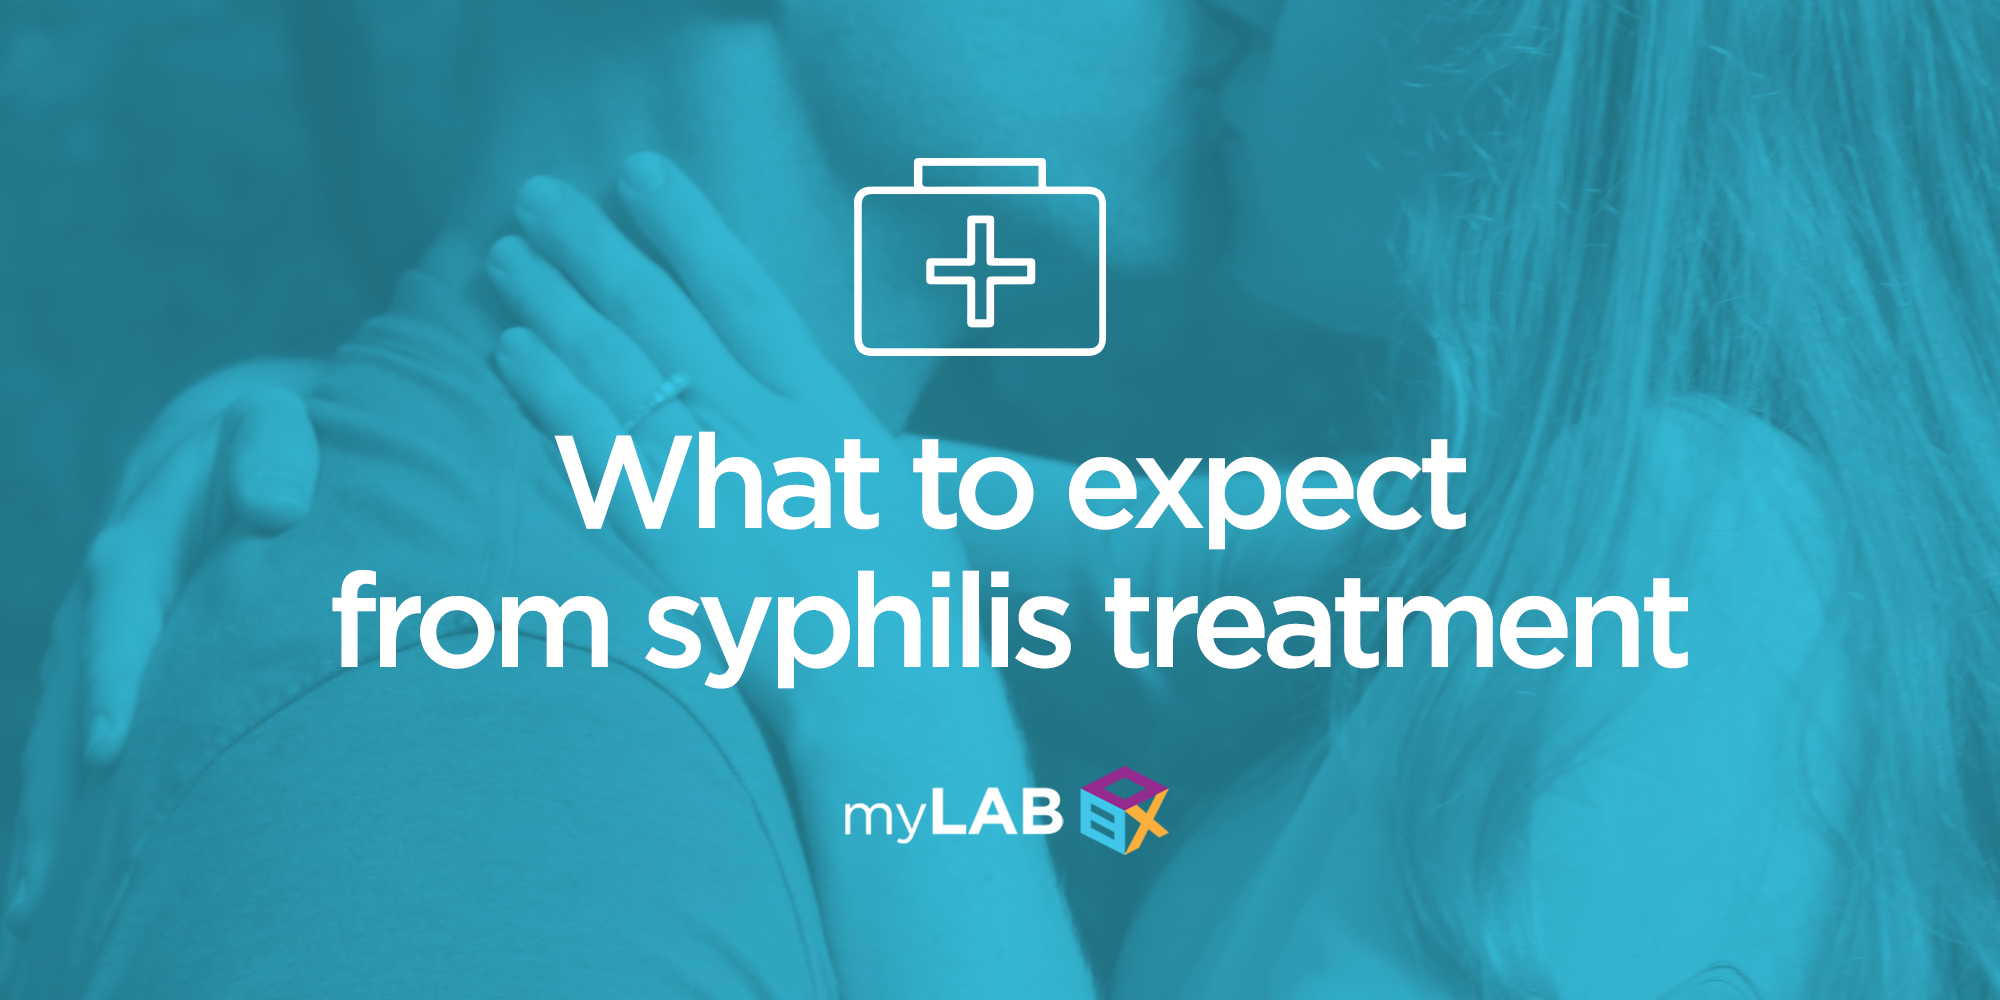 What to expect from syphilis treatment